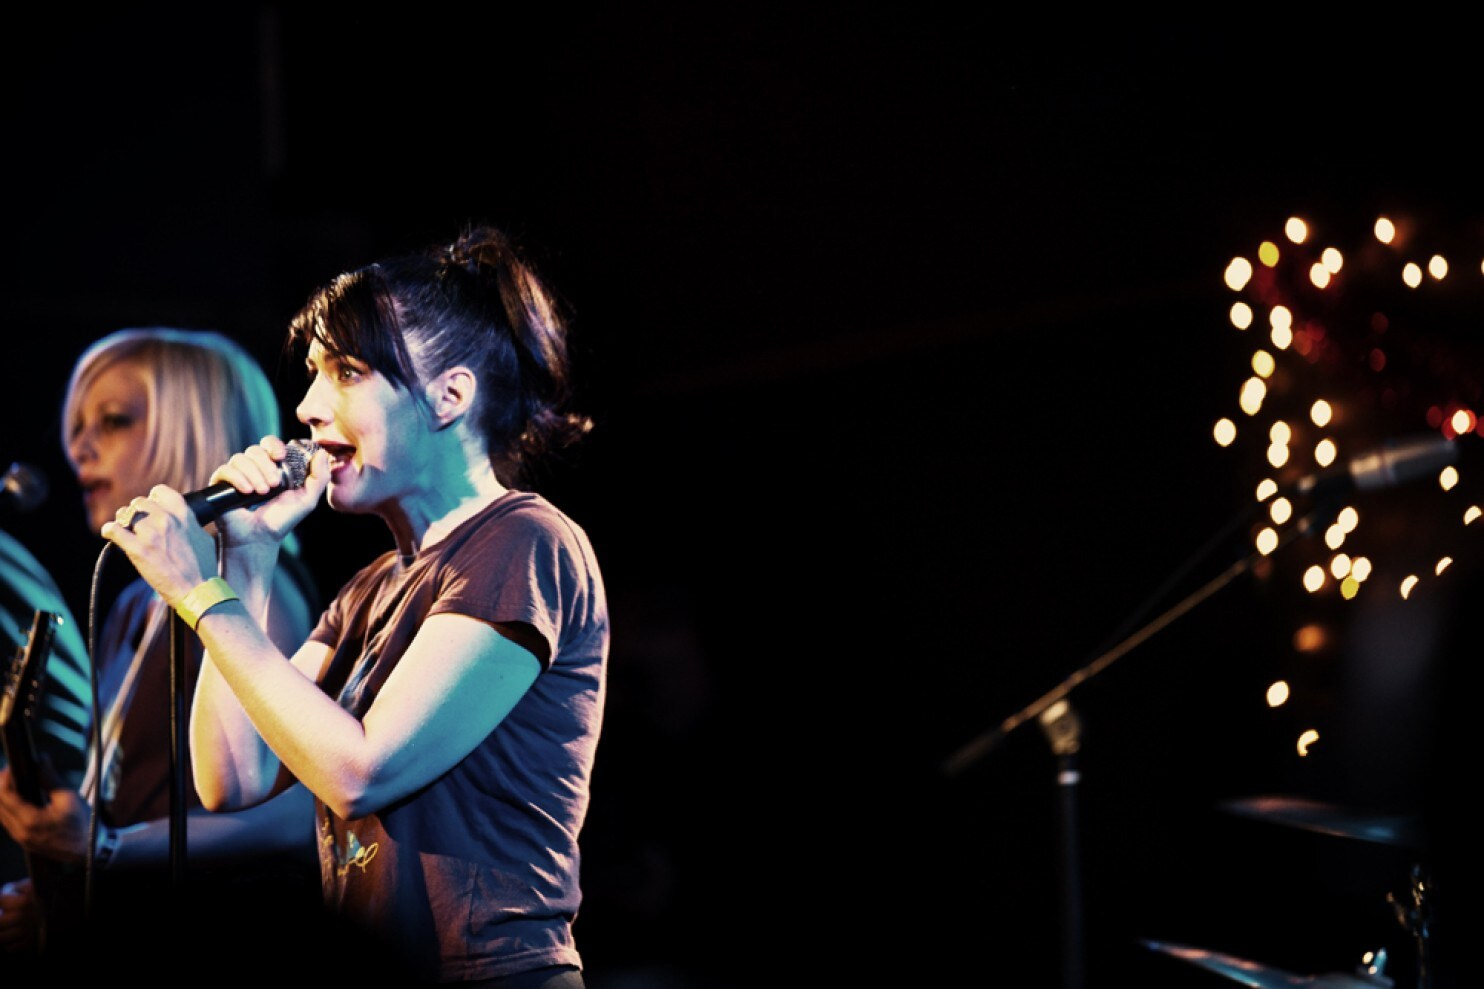 The Punk Singer featuring Kathleen Hanna movie at Arena Theater